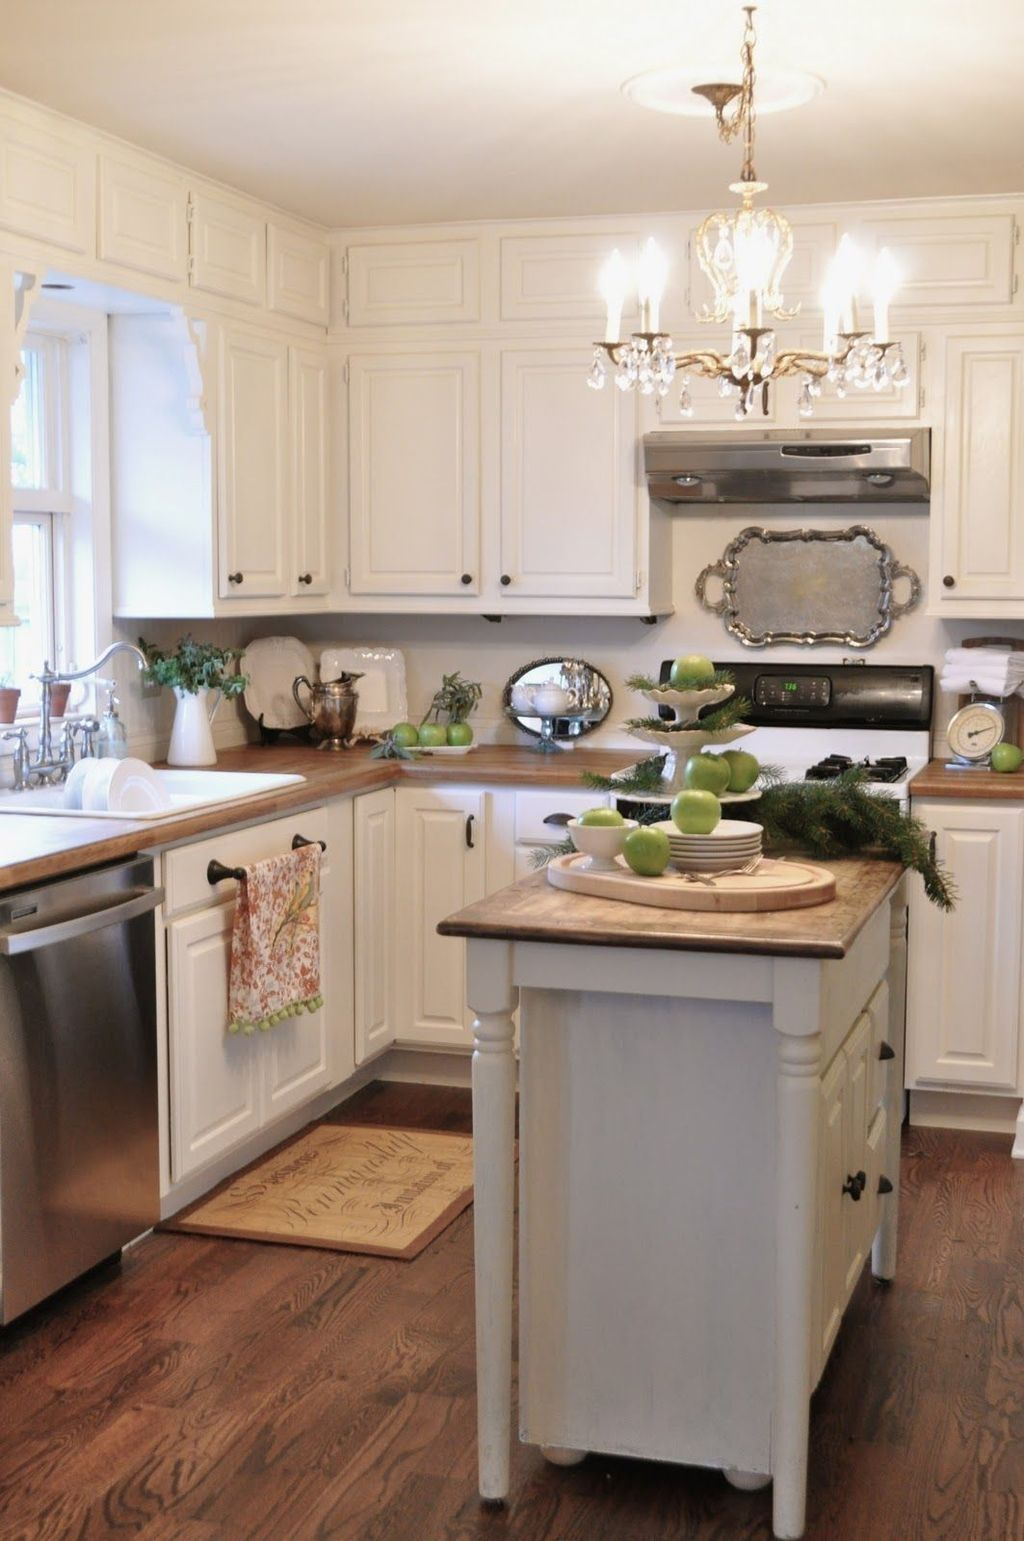 30 ideas to update your kitchen on a budget budget kitchen remodel kitchen soffit kitchen redo on kitchen ideas on a budget id=12591